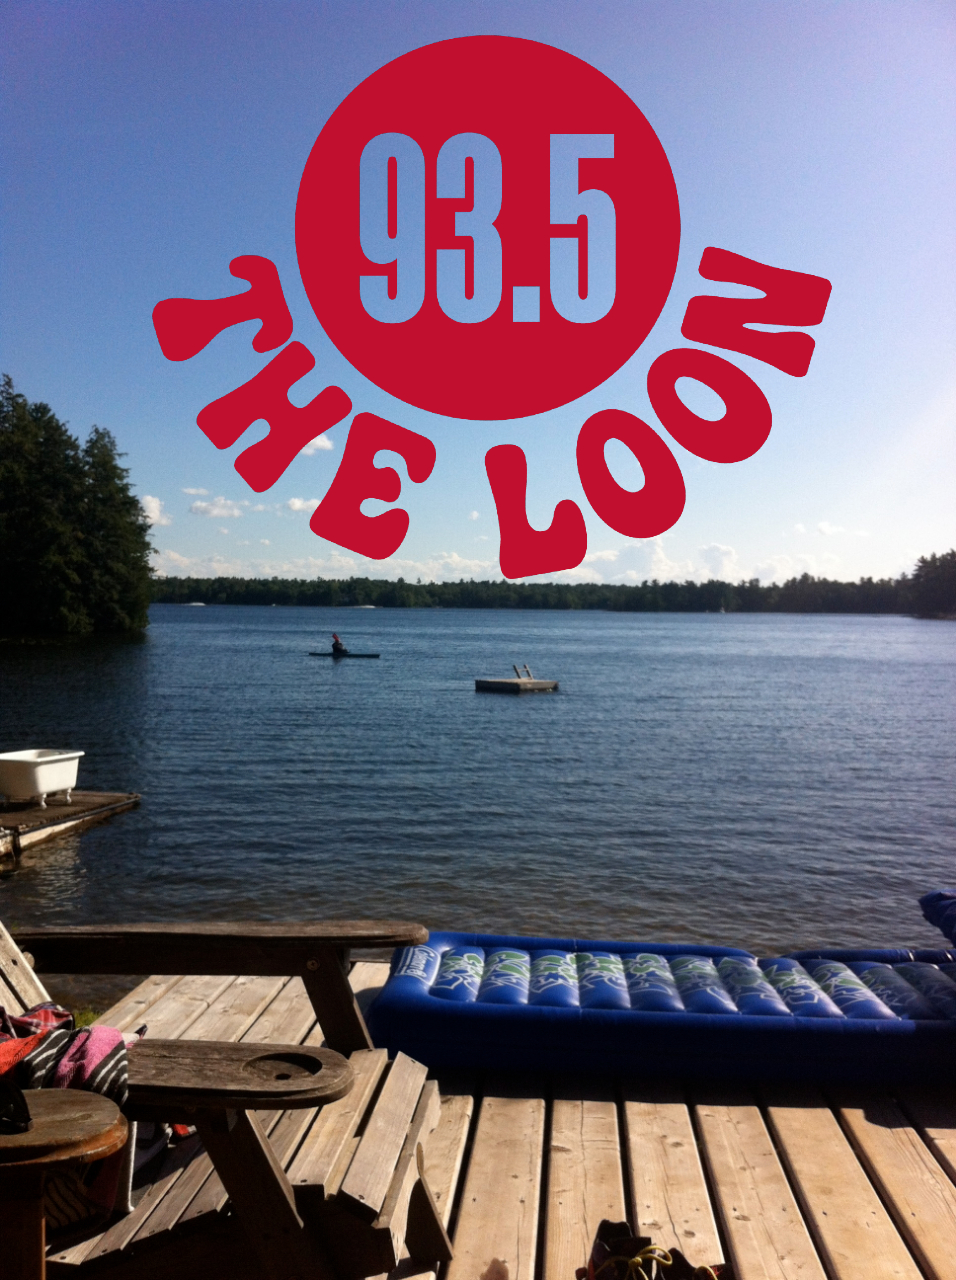 Dock near the lake with chairs and floating mattress with trees in the distance. The 93.5 Loon logo in the horizon.